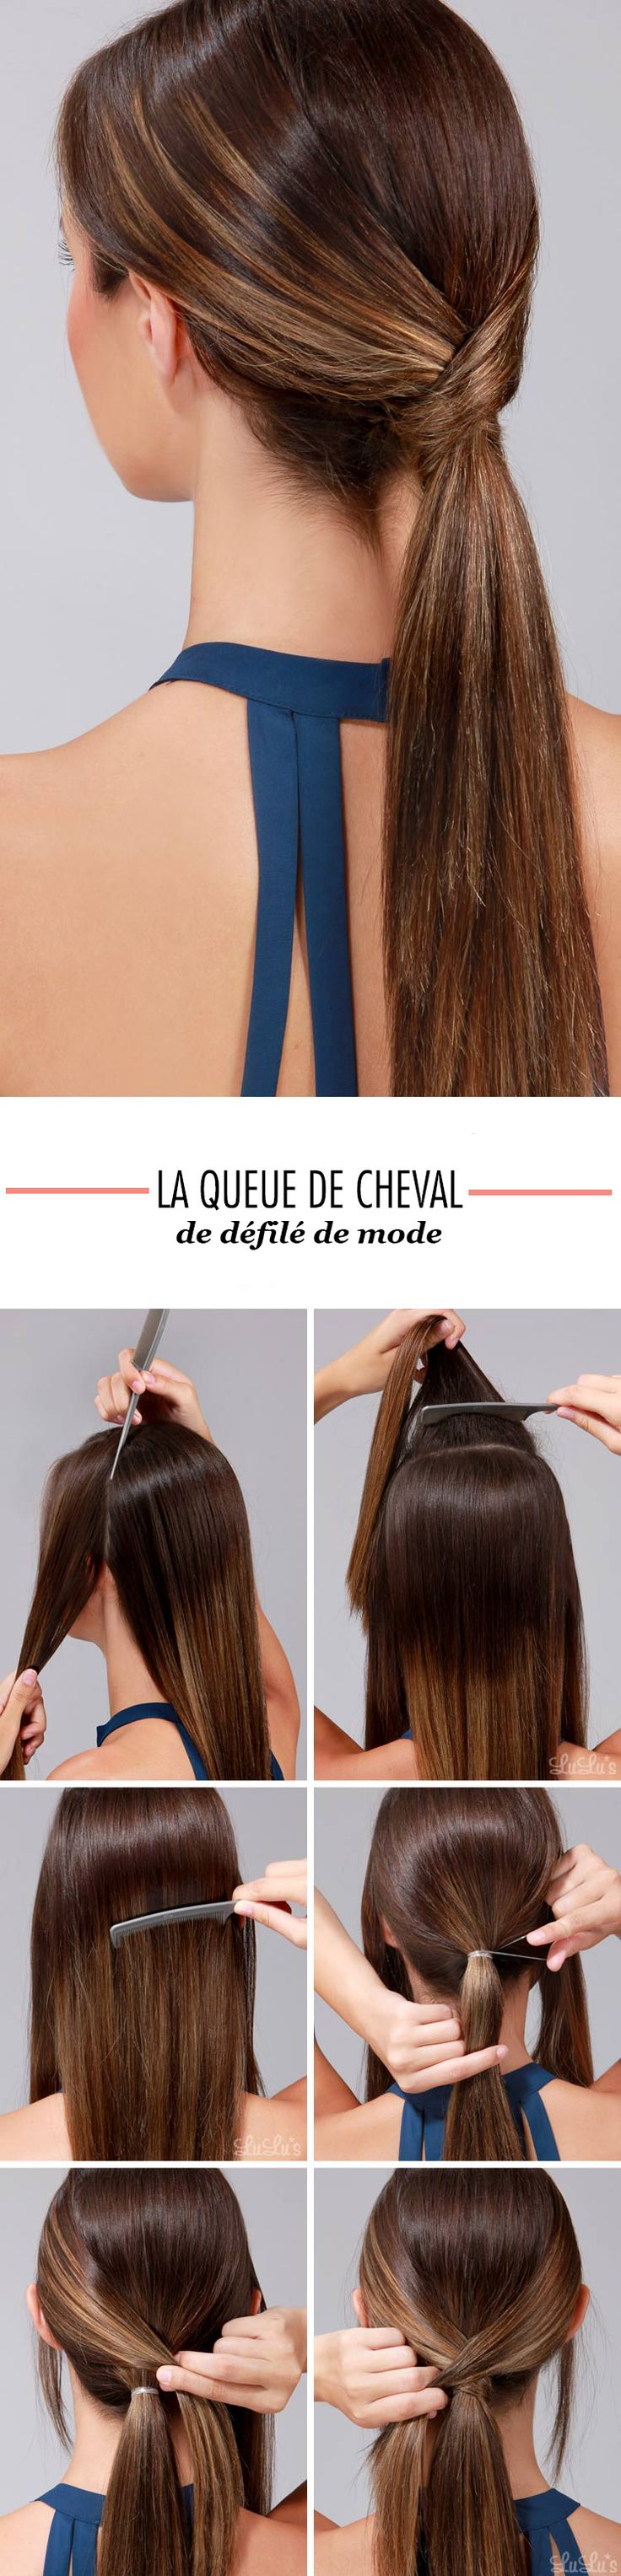 Tutoriel pour réaliser la queue-de-cheval made in podium !